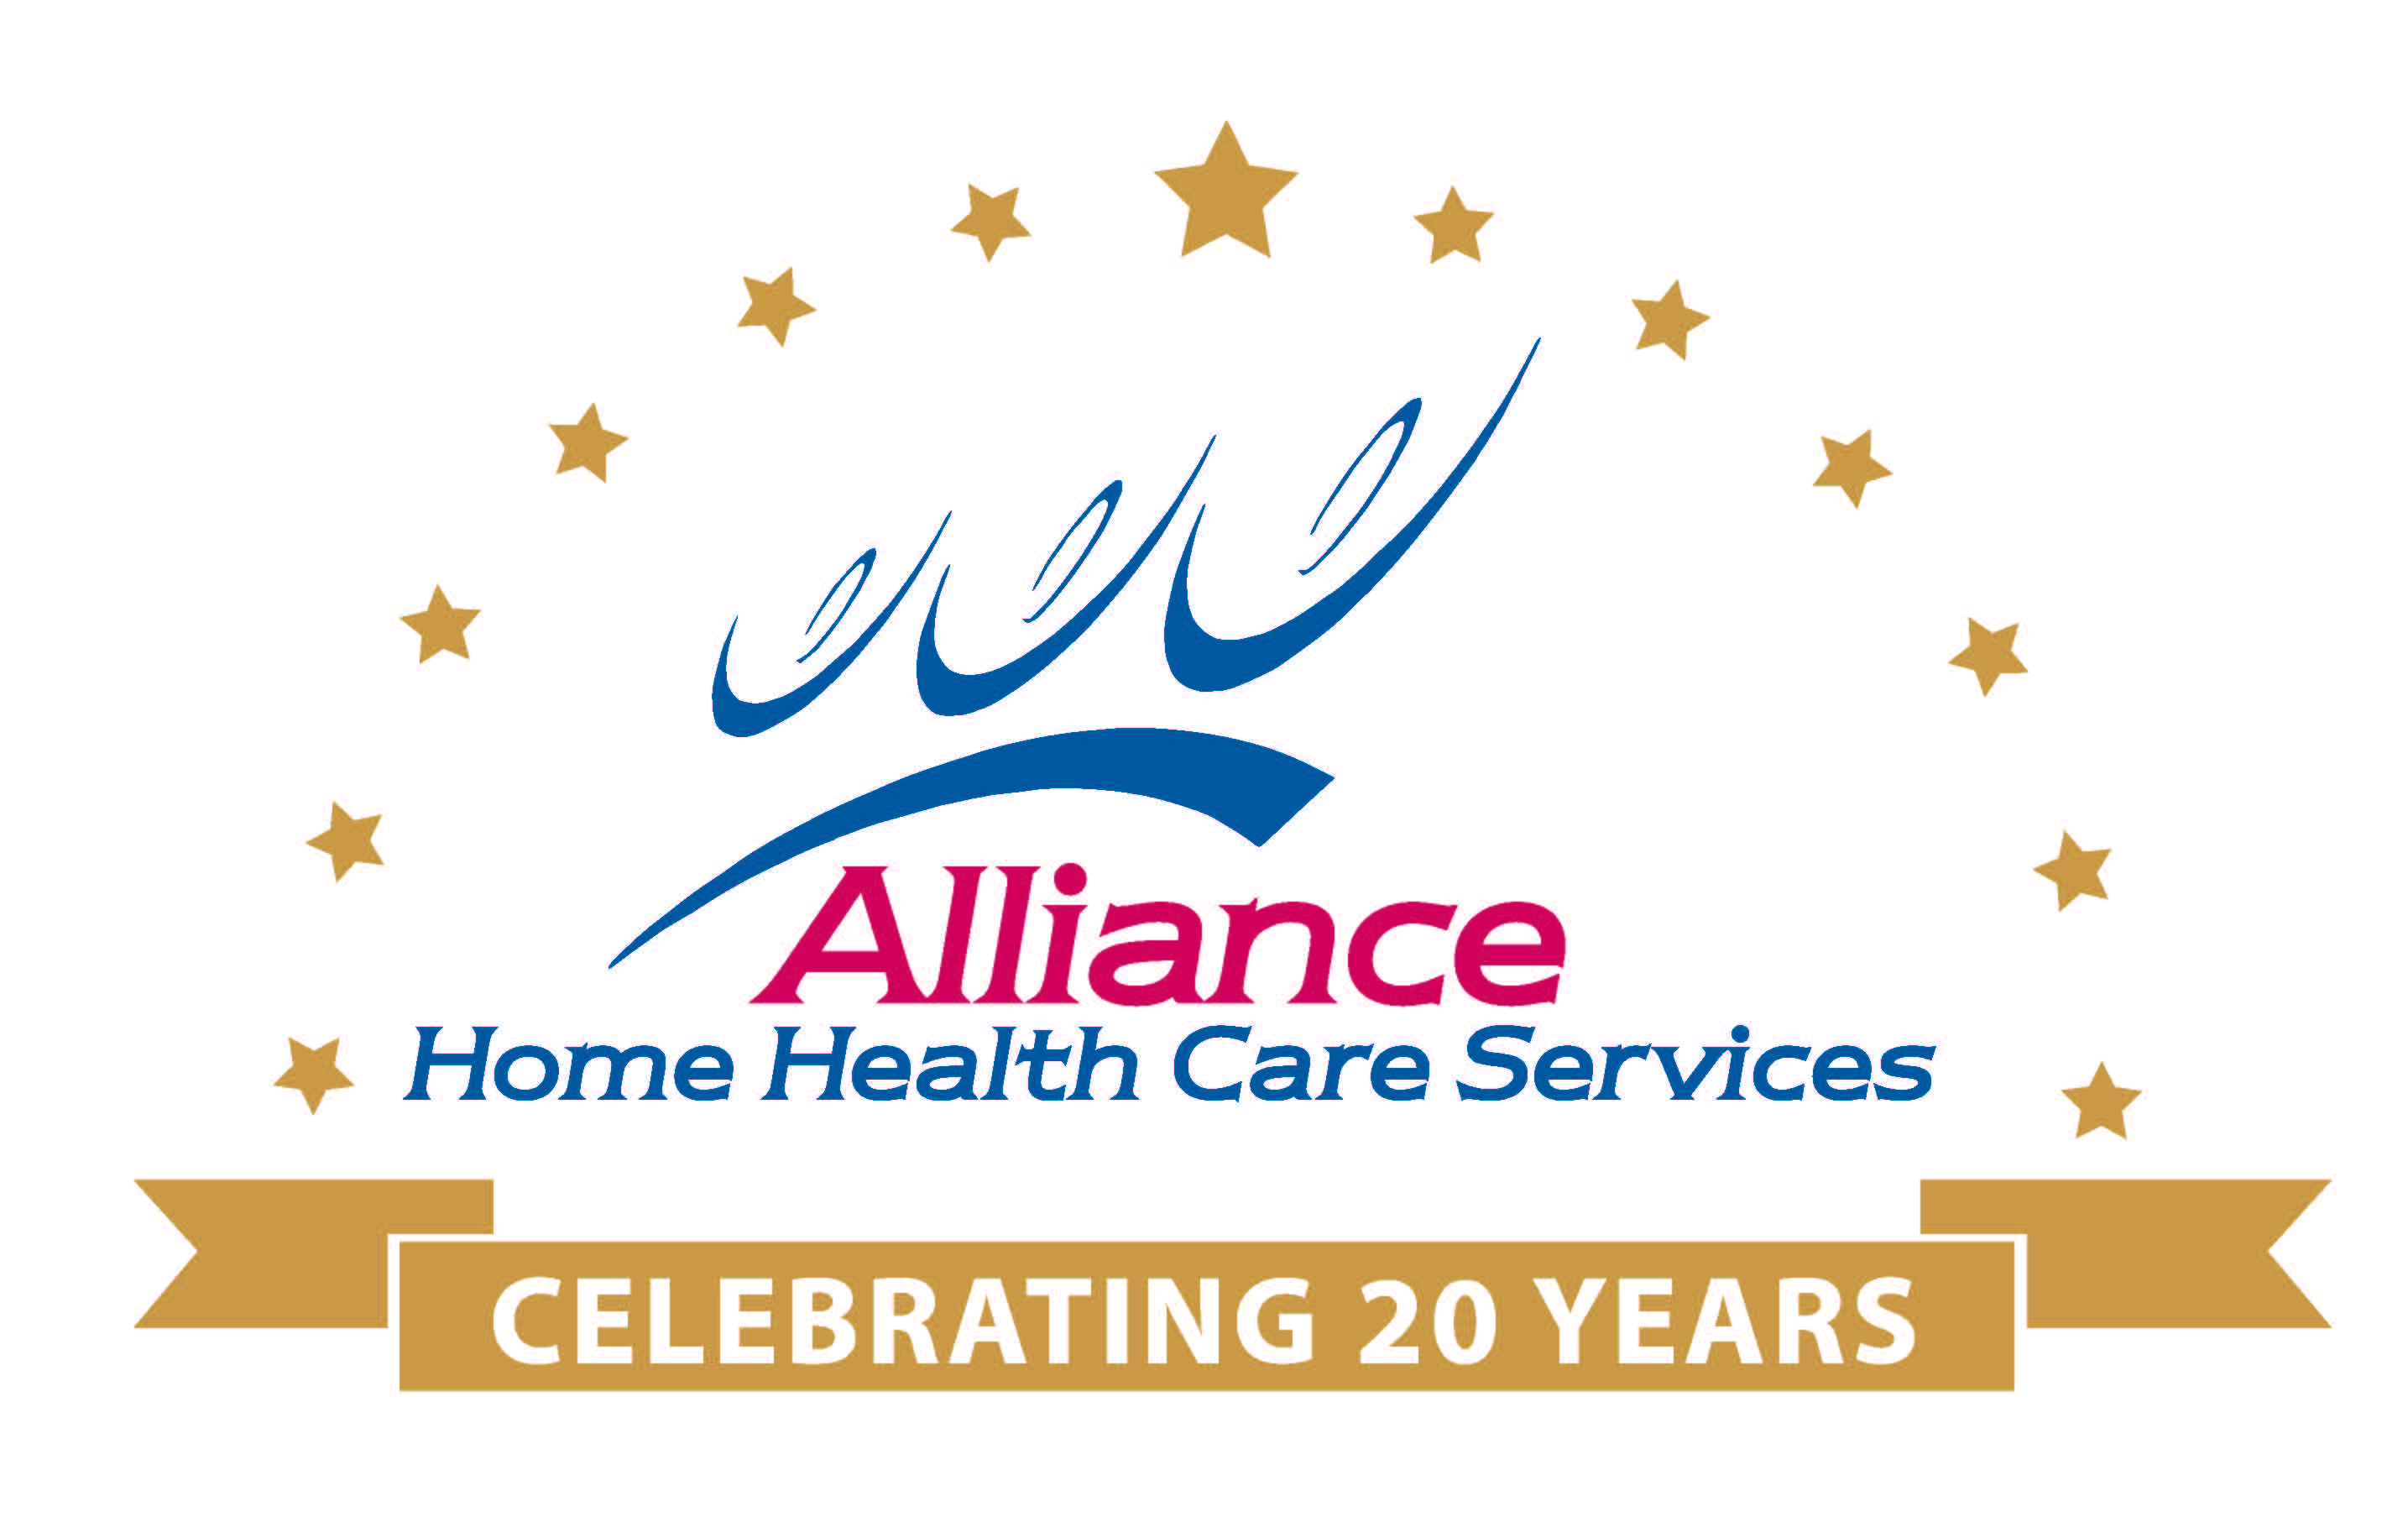 Home care services in Holland, Michigan by Alliance Home Health Care Services – image.